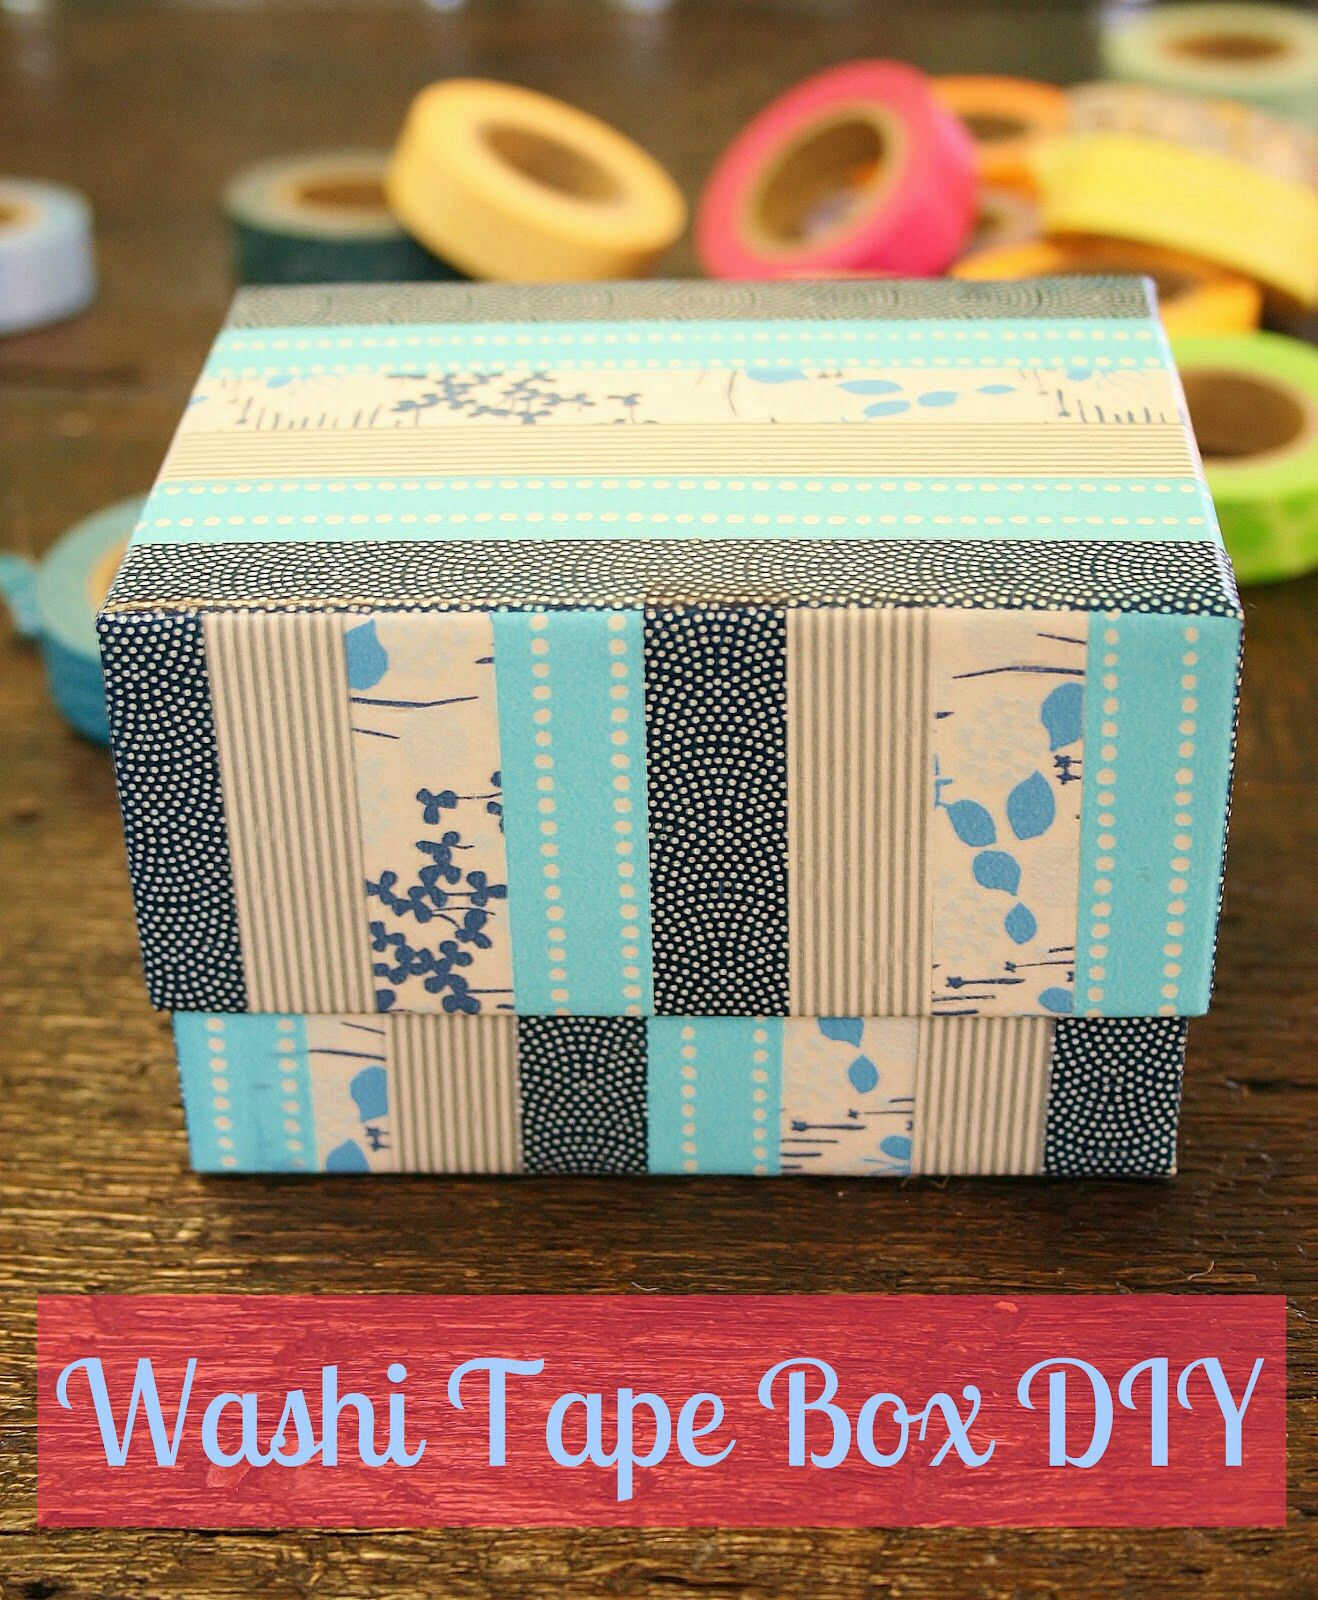 washi diy washi tape ideas pinterest. Black Bedroom Furniture Sets. Home Design Ideas